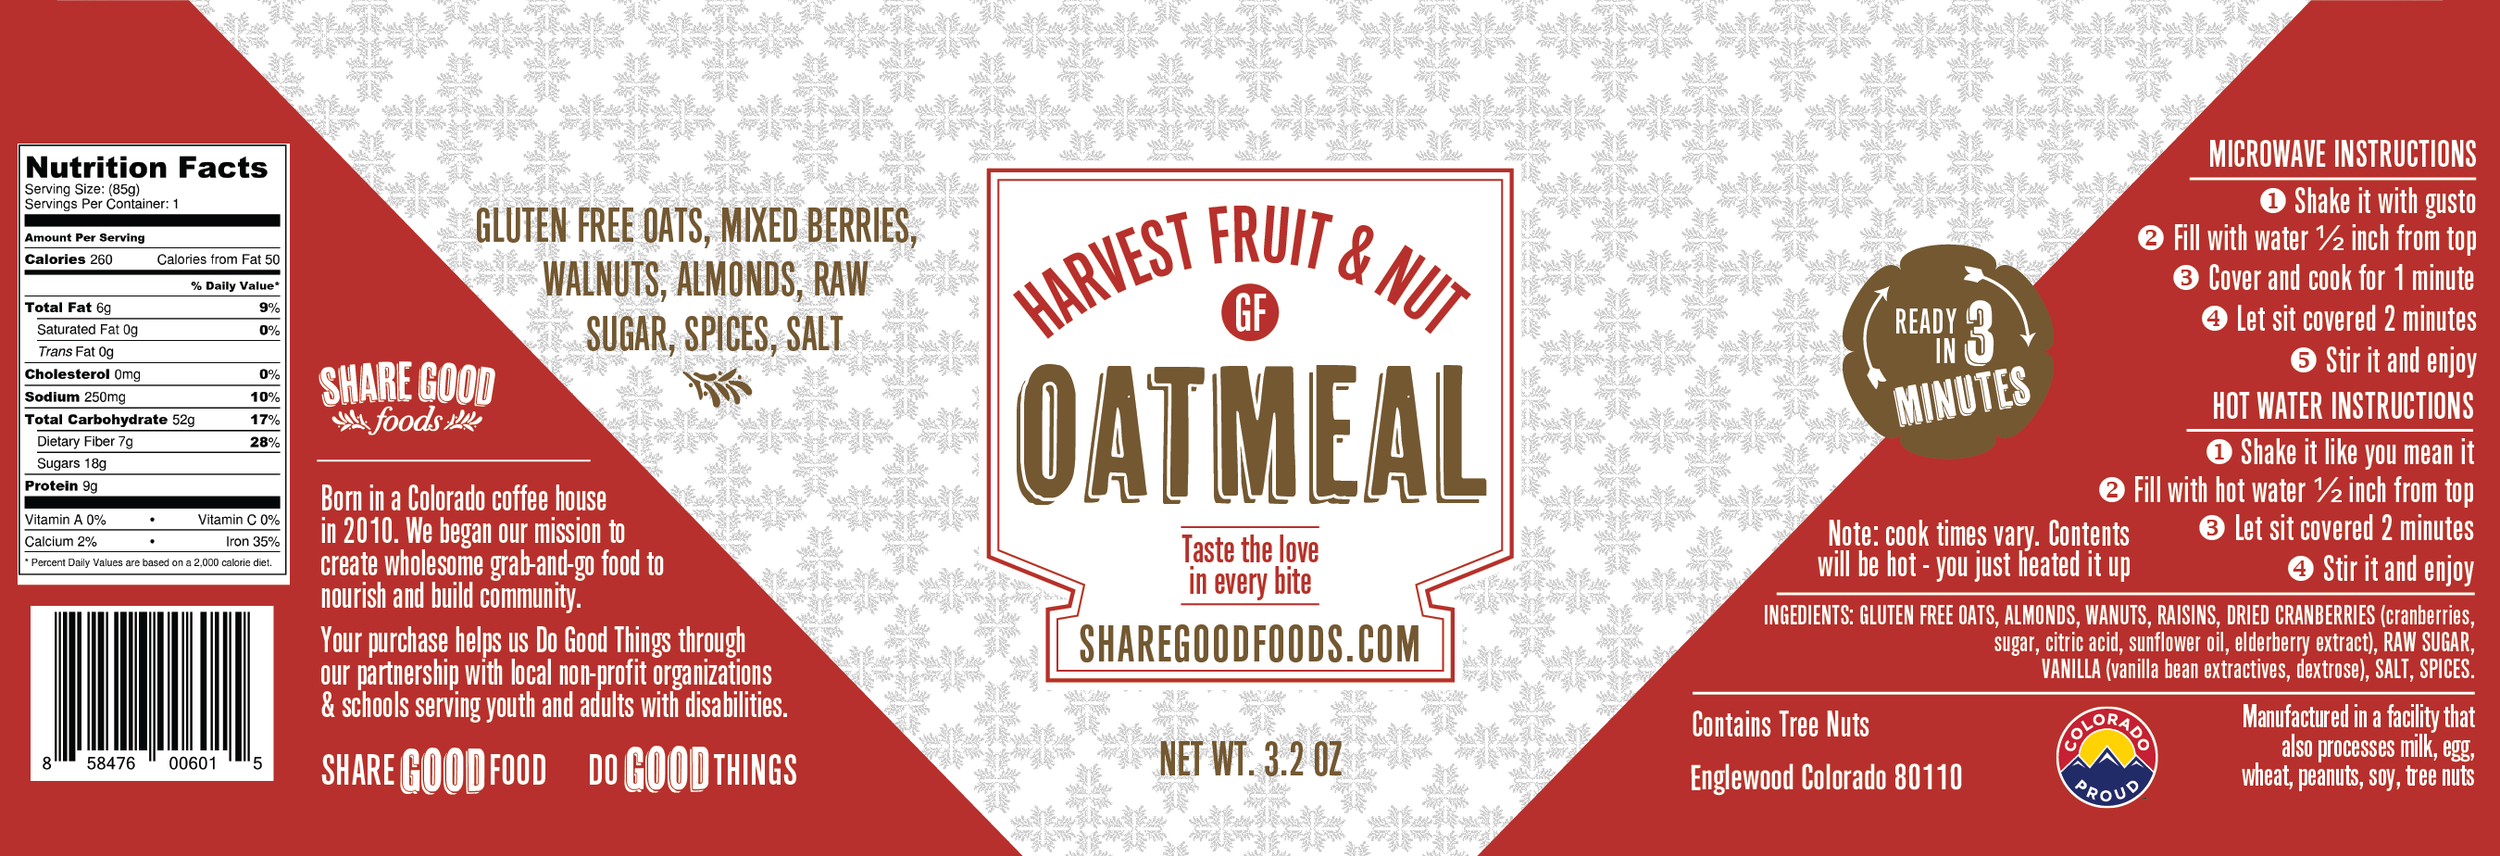 Harvest Fruit and Nut Oatmeal.png